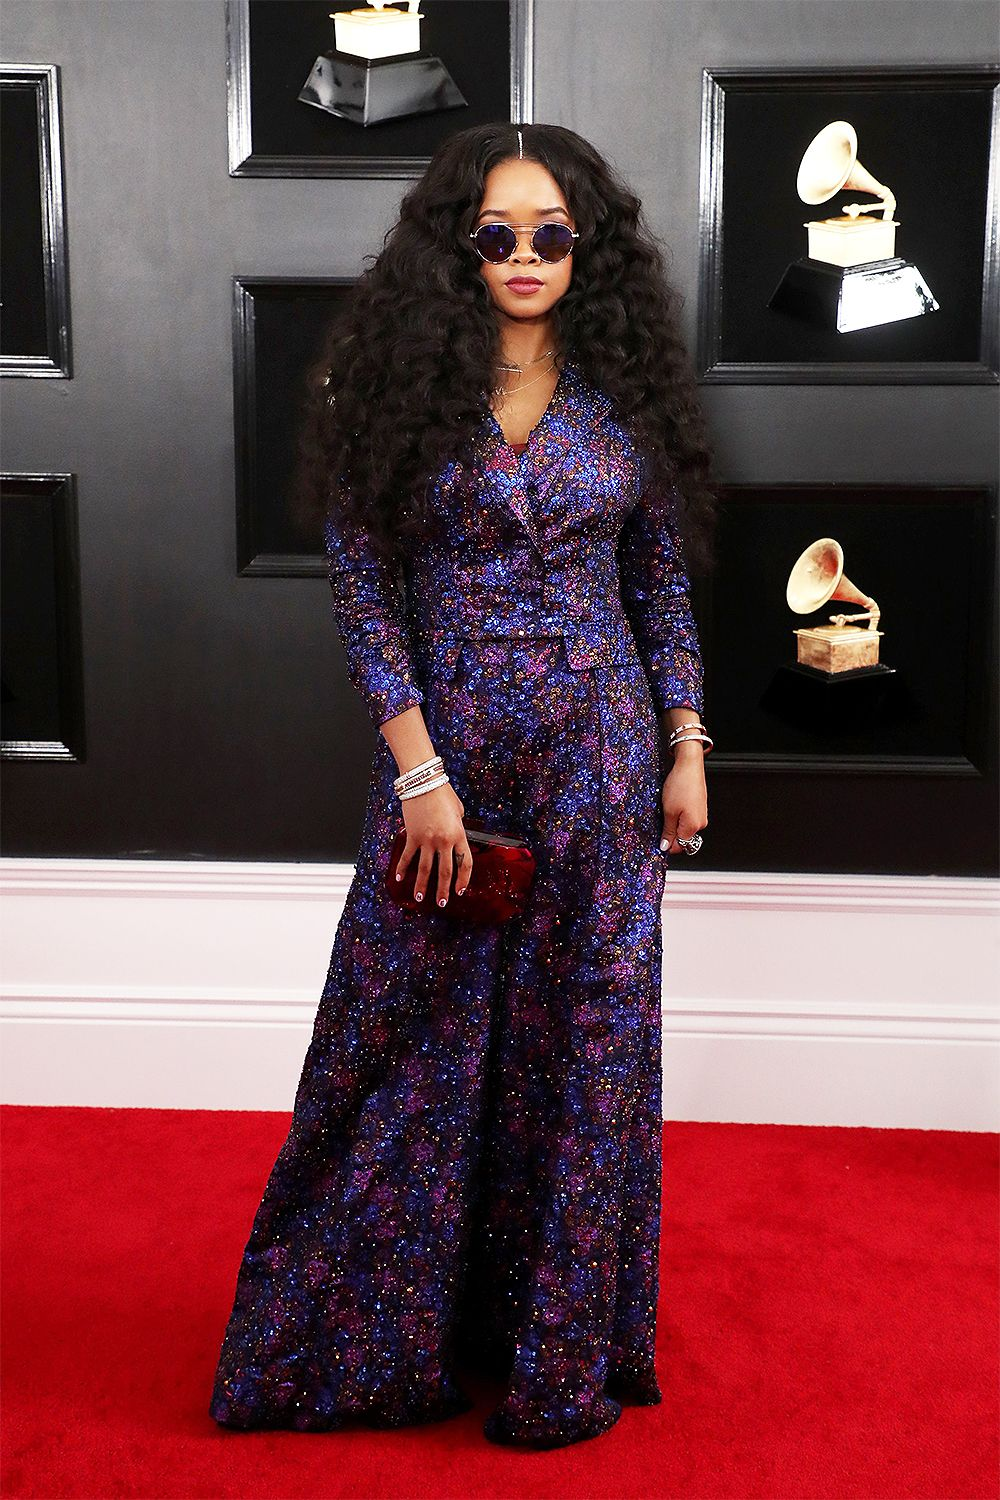 Grammy Awards' Best Dressed 2019 — See Fab Red Carpet